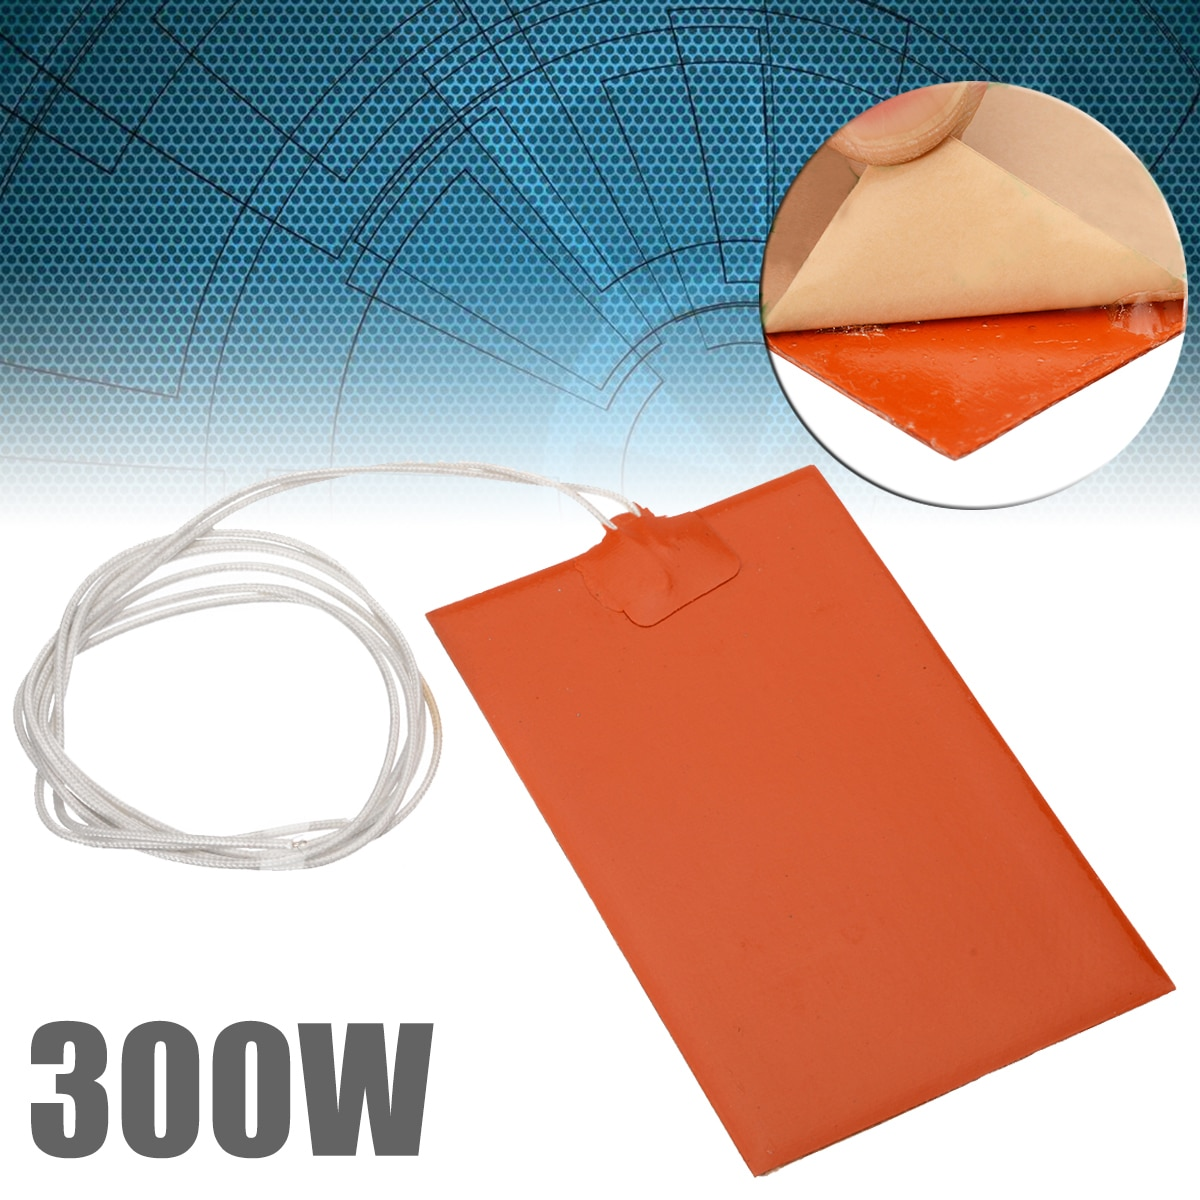 300W 220V Engine Oil Tank Silicone Heater Pad Universal Fuel Tank Water Tank Rubber Heating Mat Warm